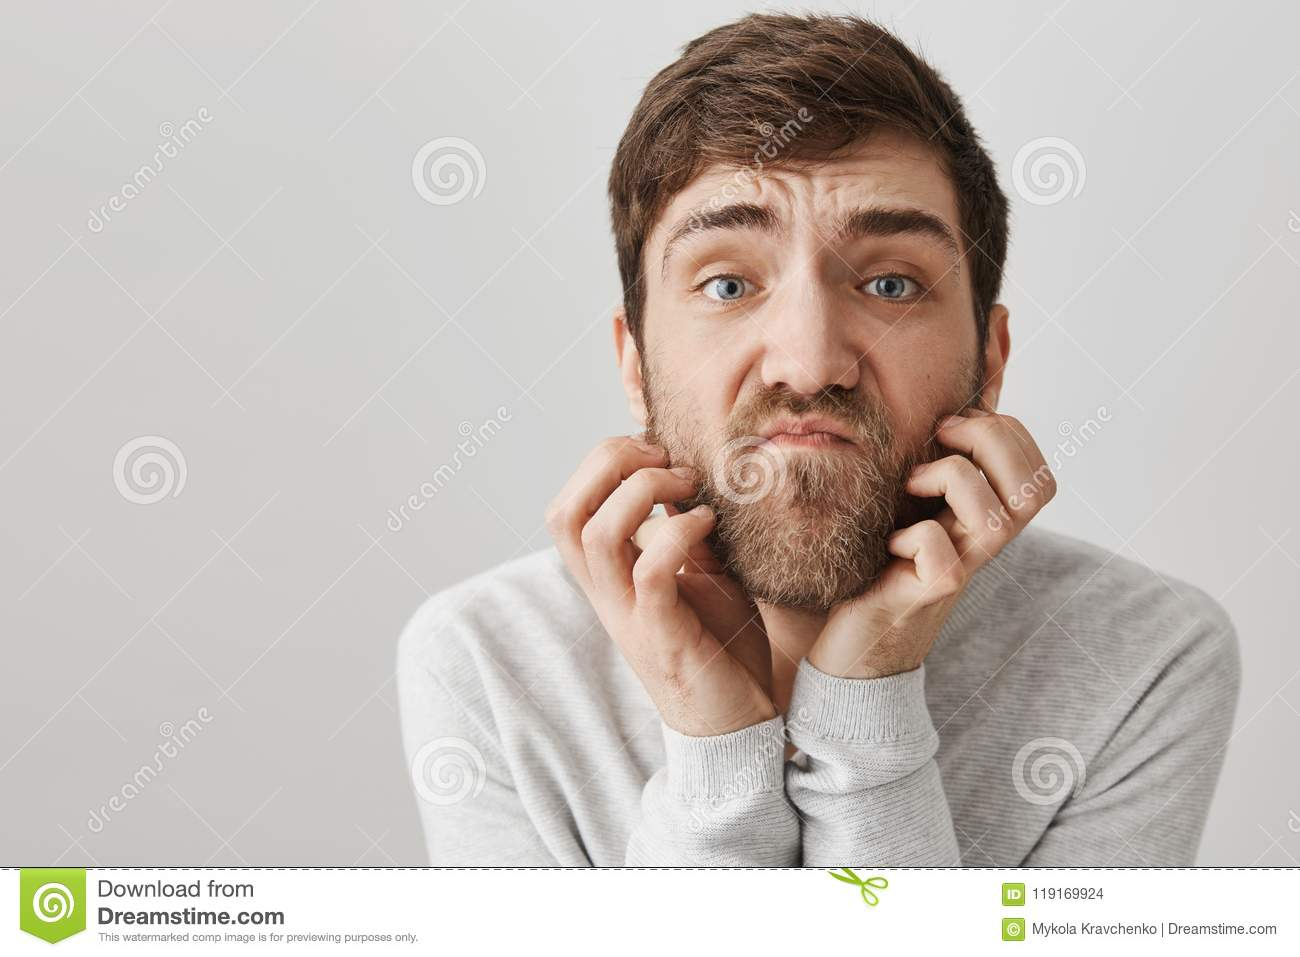 Close-up portrait of clumsy unshaven adult man scratching beard while looking with unsatisfied look at camera as if it